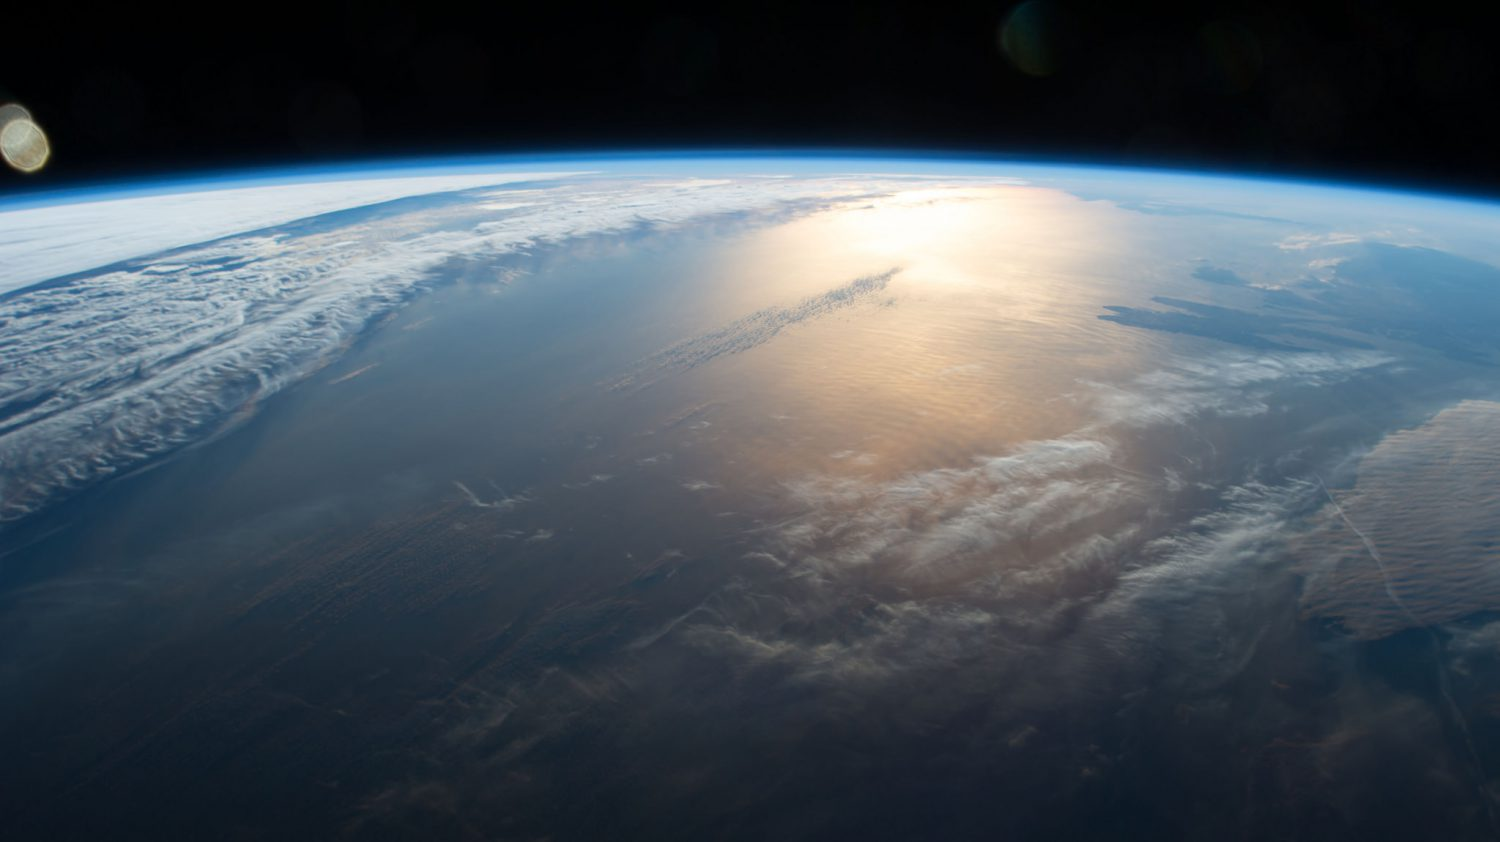 Our planet from the space station